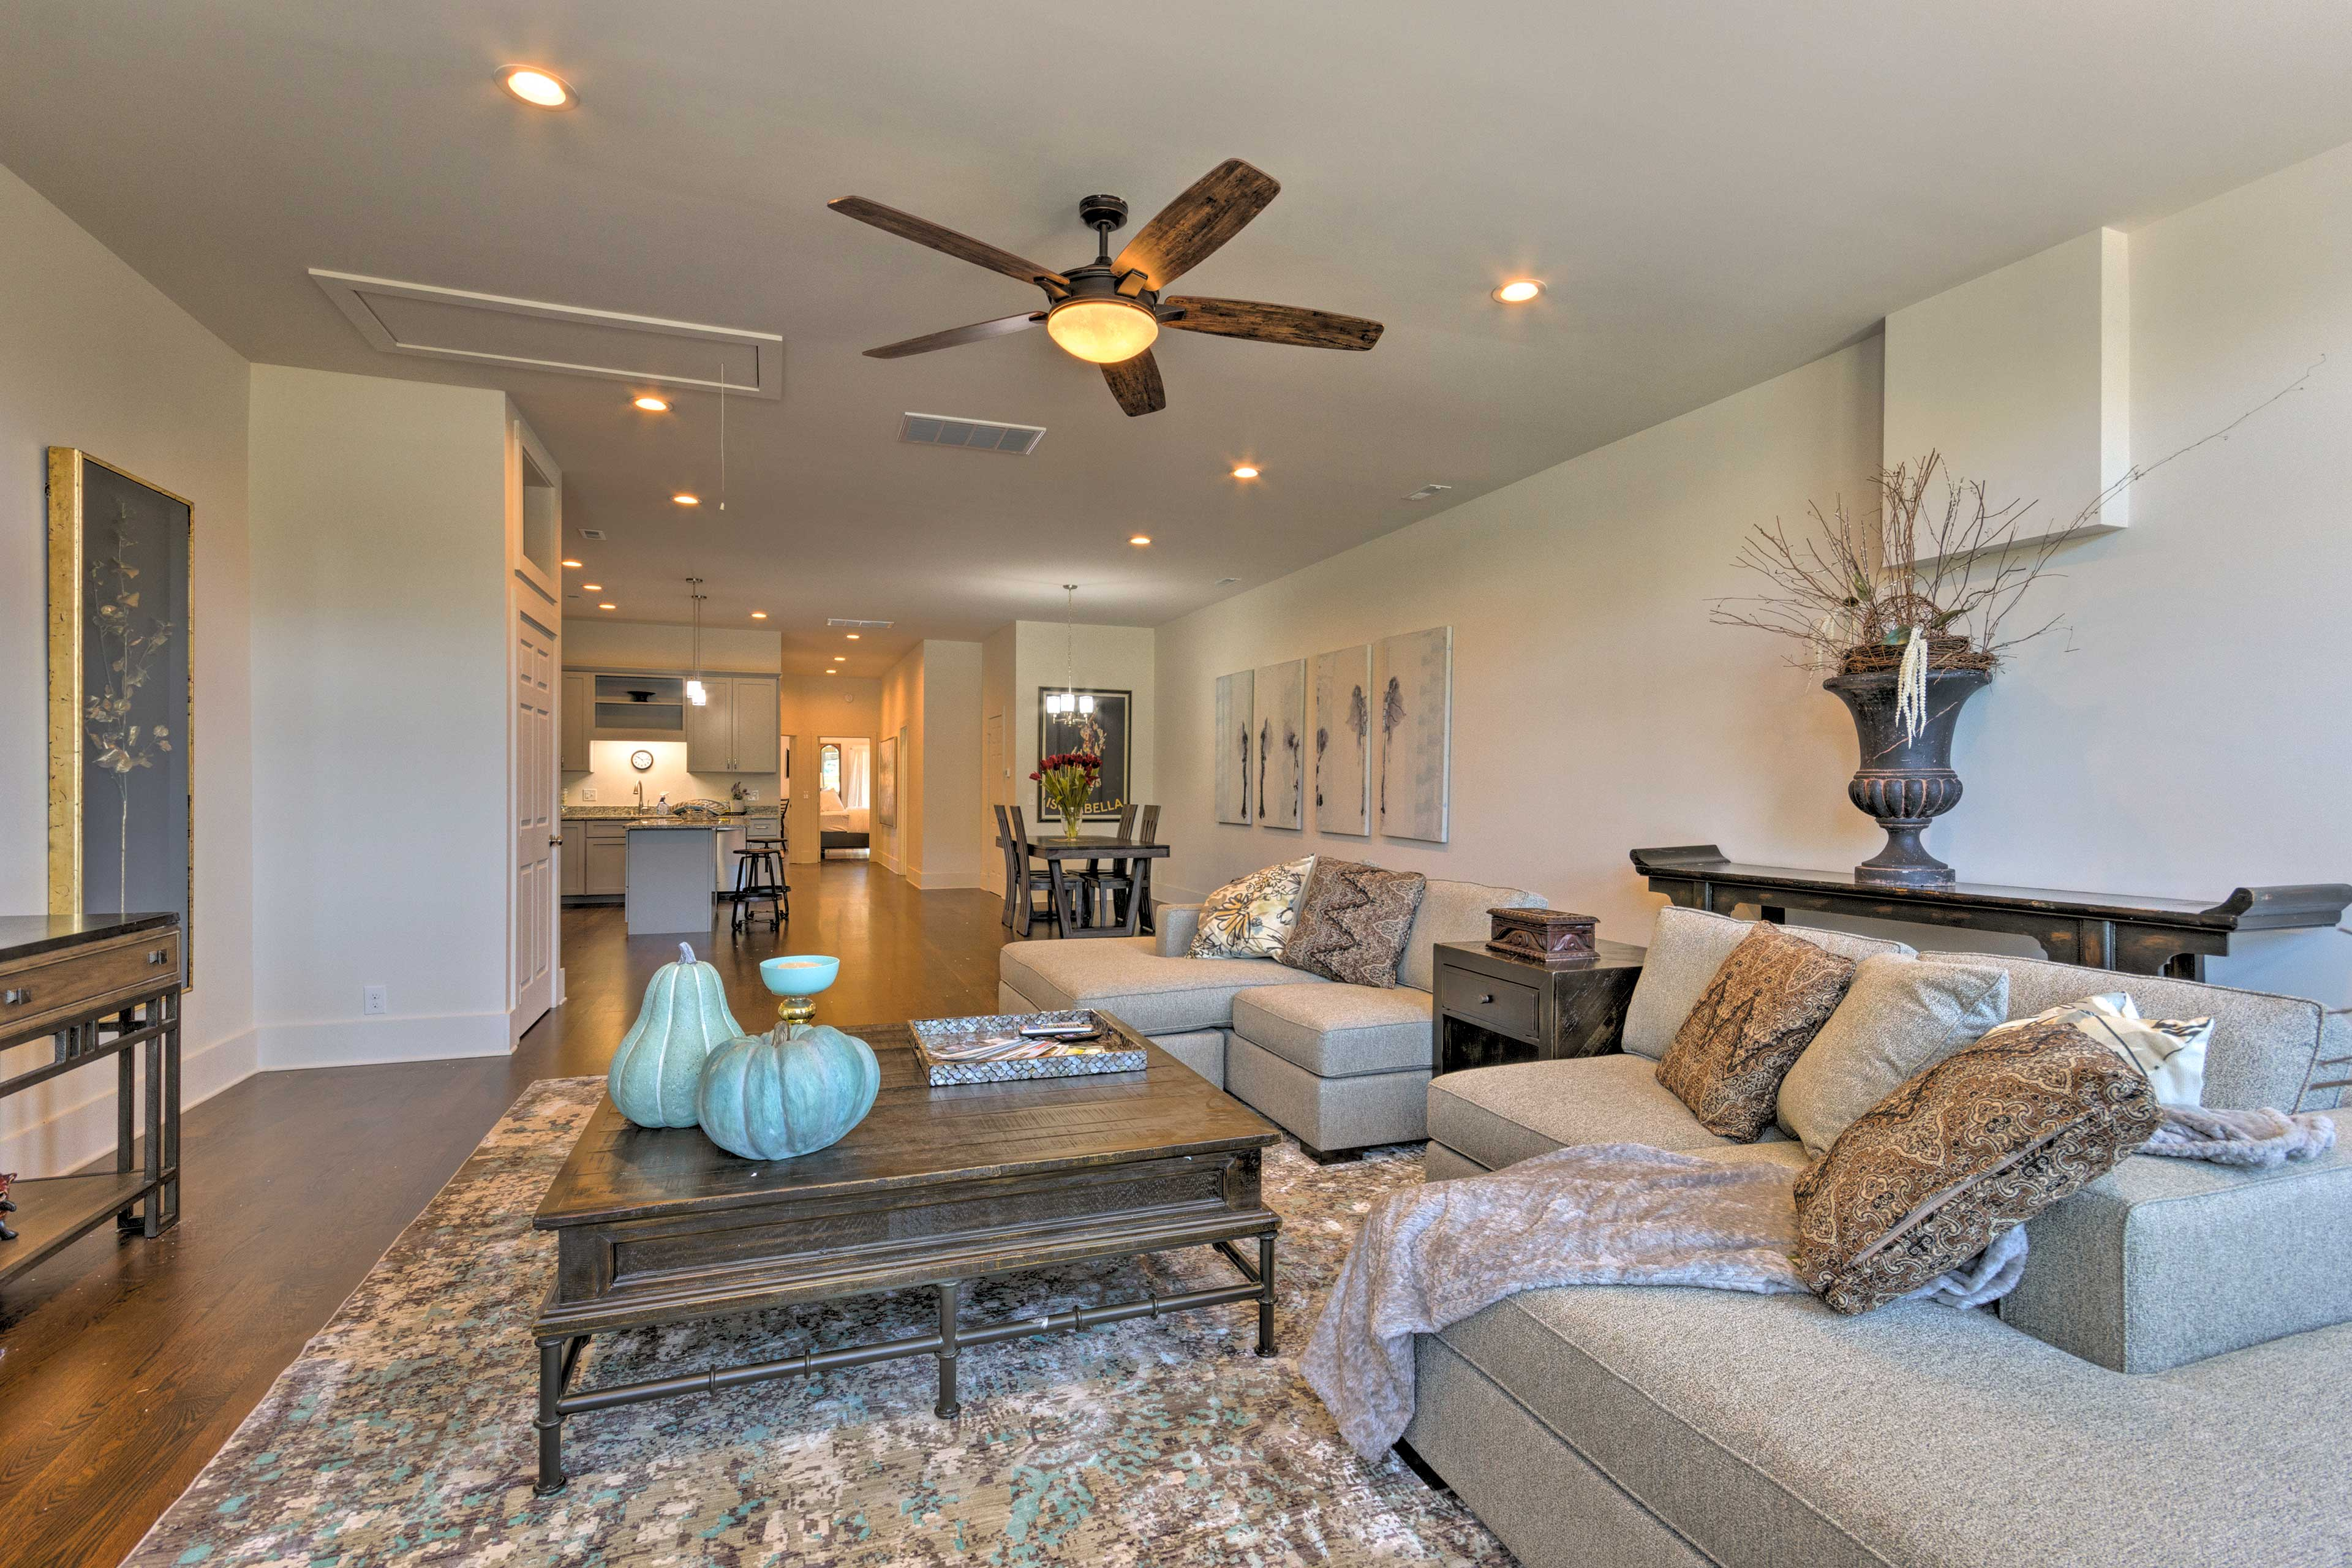 Contemporary decor highlights the space.